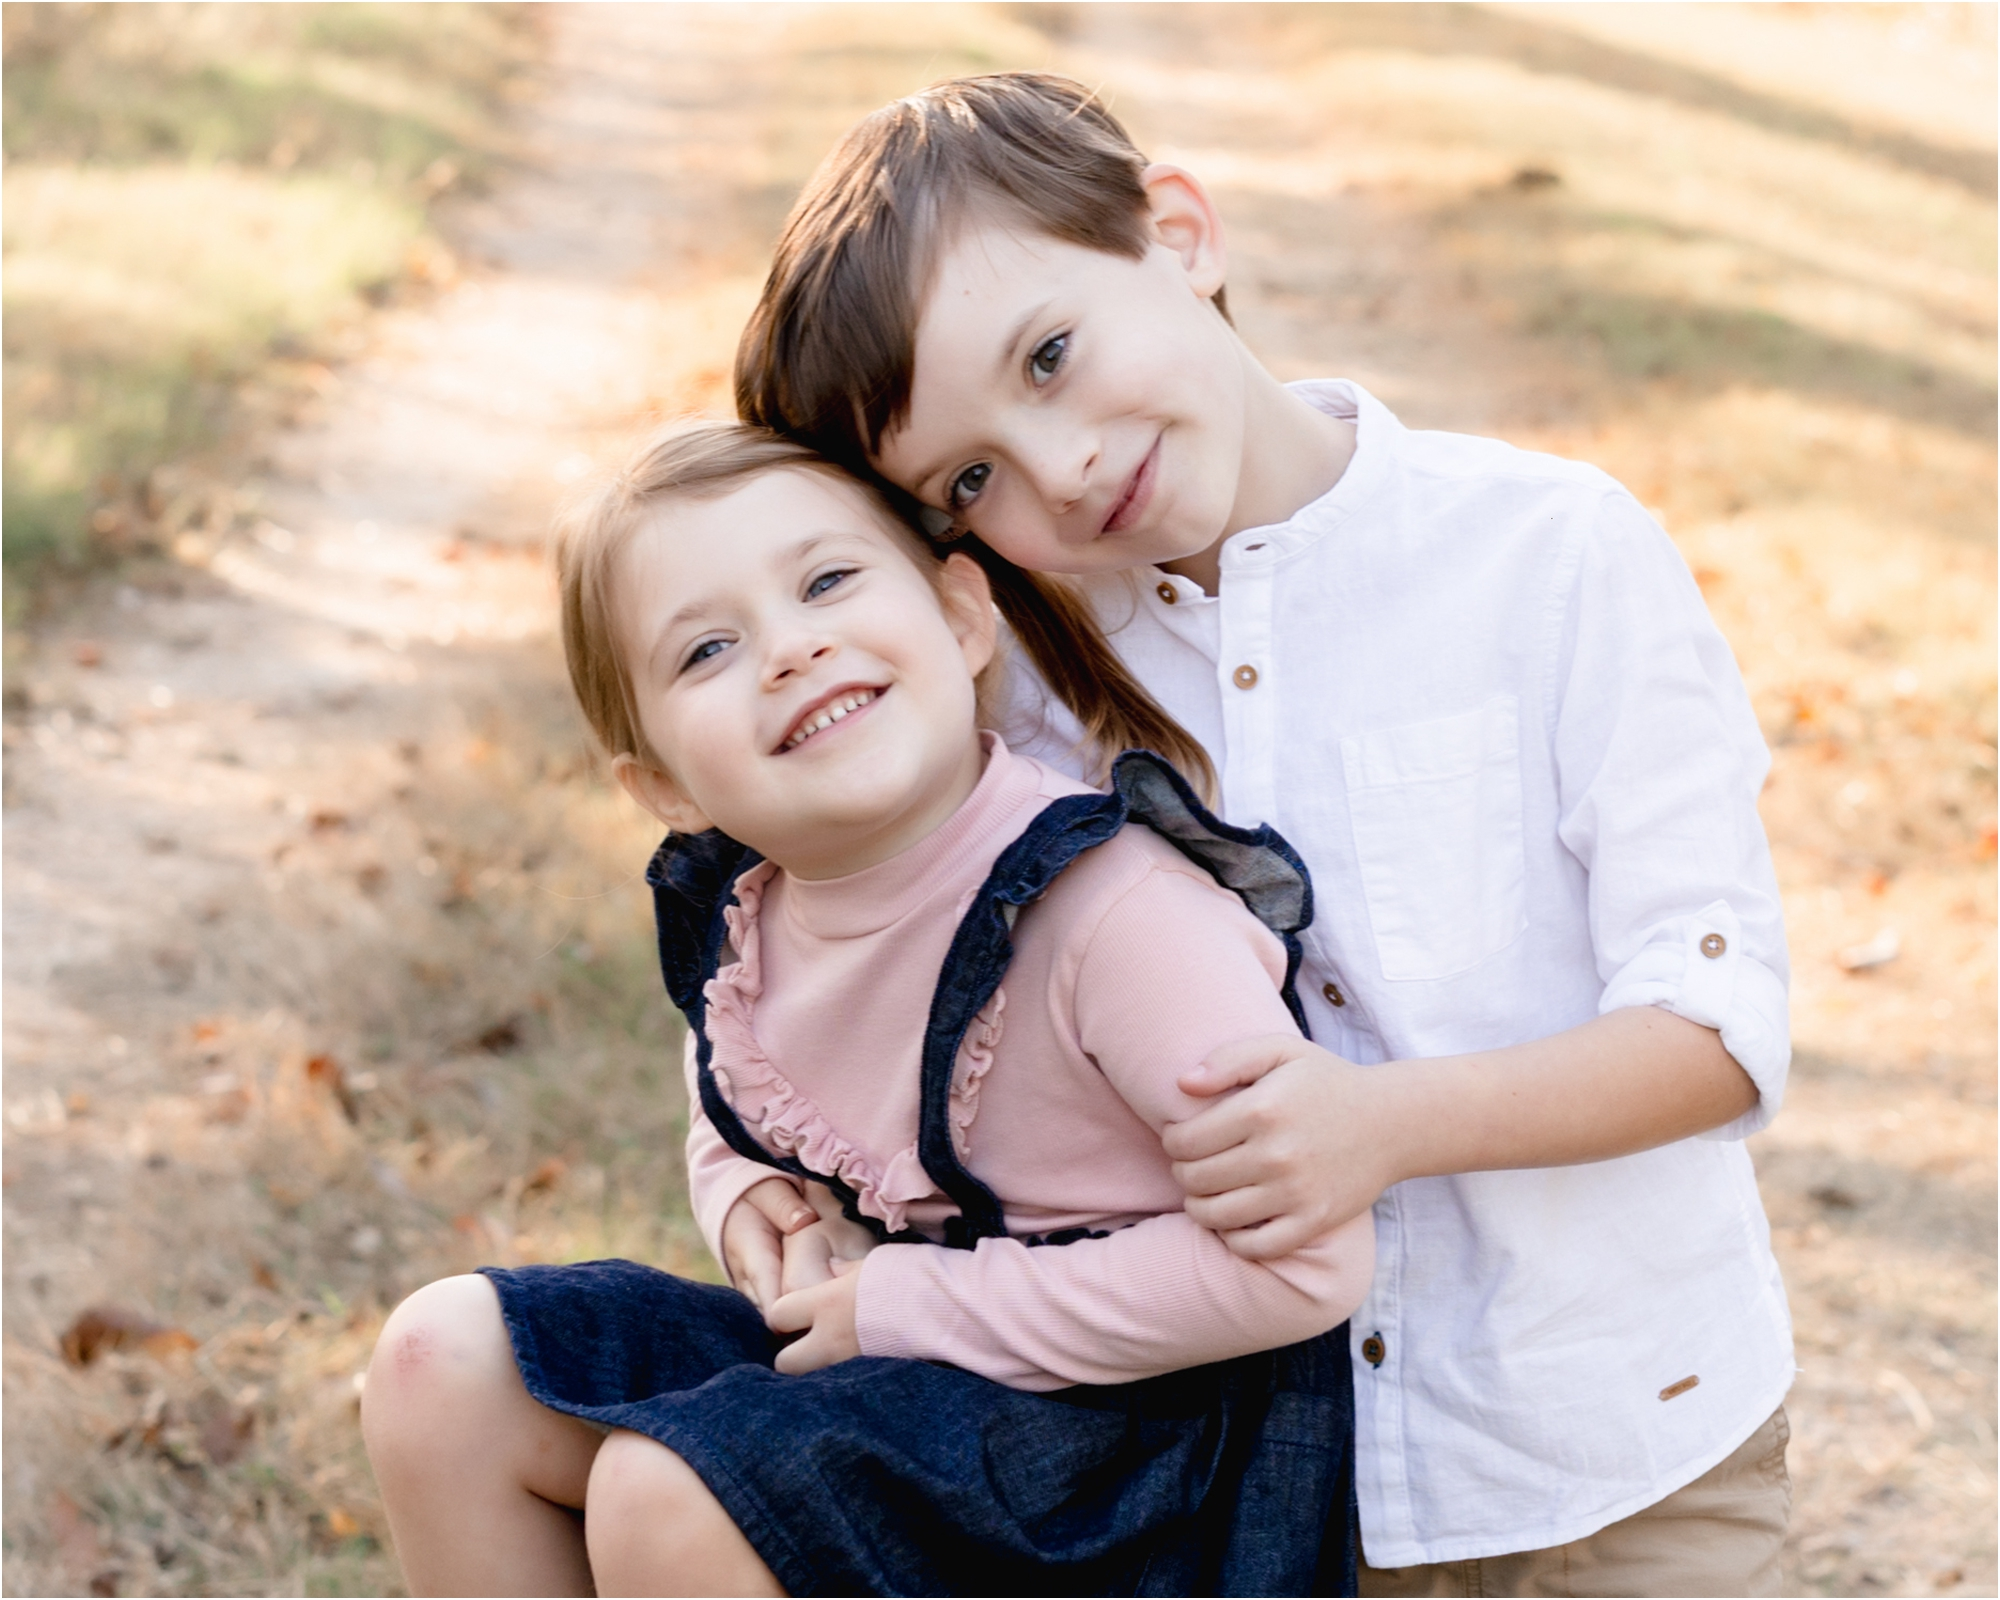 Closeup of brother and sister hugging during family photoshoot. Photo by family photographer in Katy TX, Lifetime of Clicks Photography.